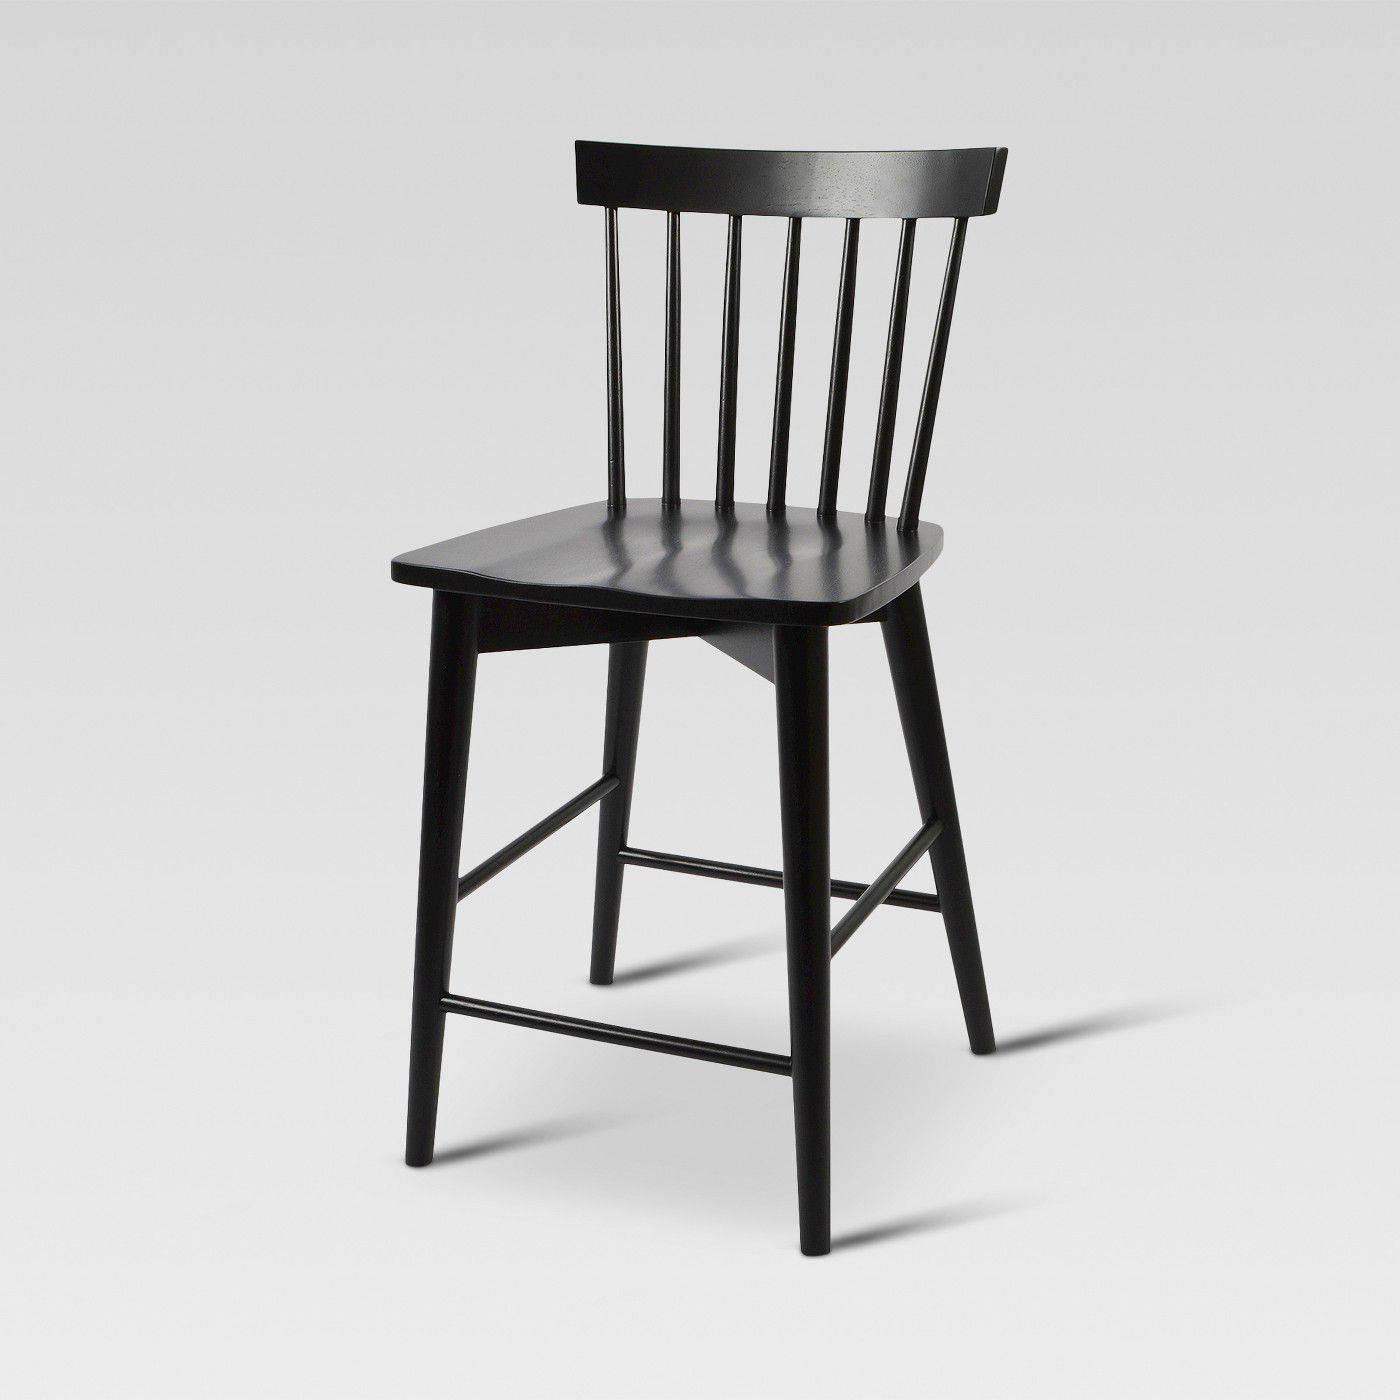 Wondrous Best Barstools Of 2019 Caraccident5 Cool Chair Designs And Ideas Caraccident5Info